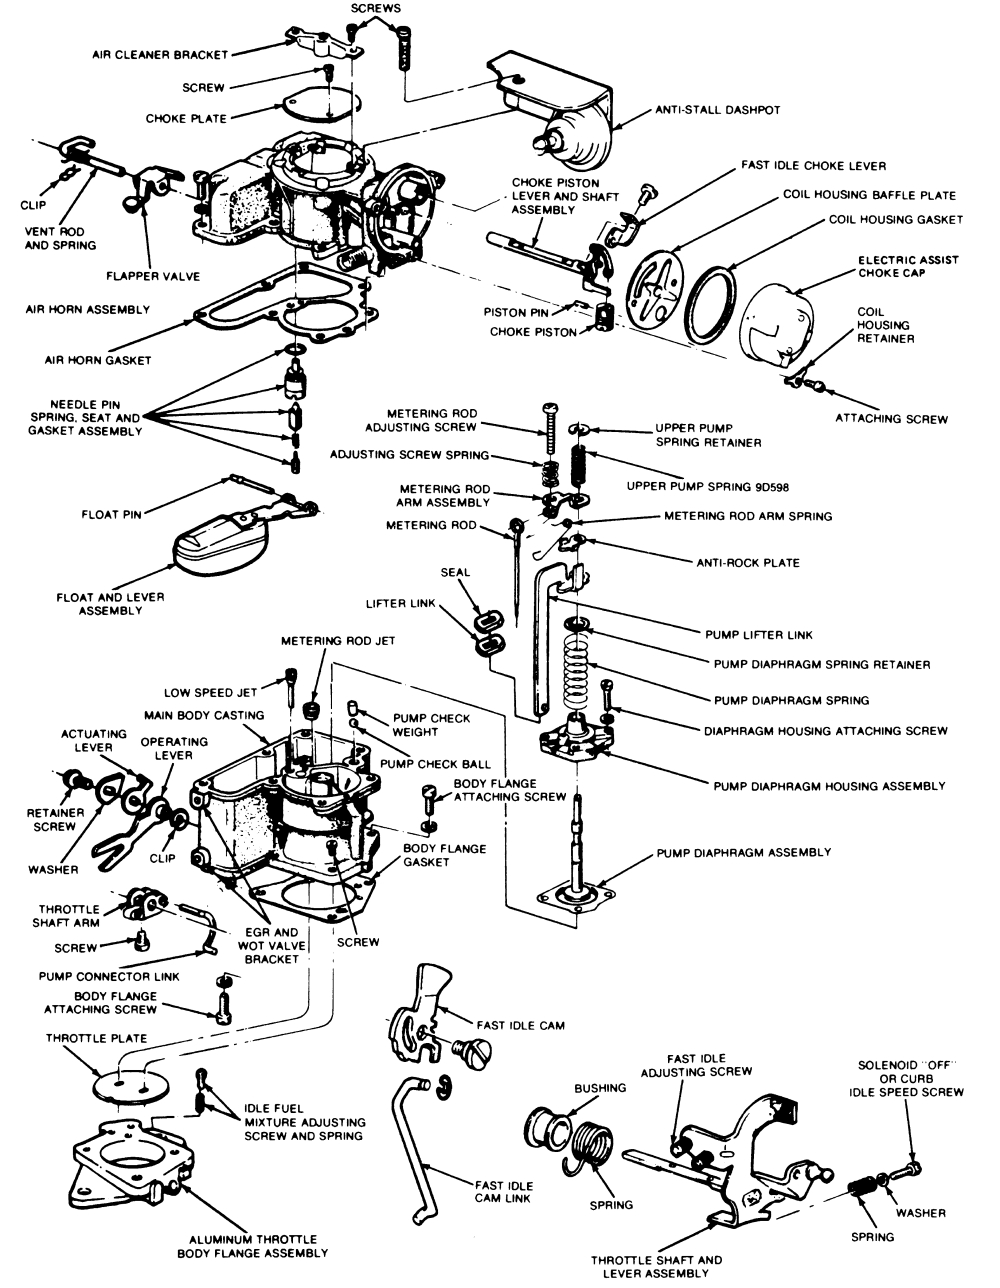 [SCHEMATICS_48EU]  TW_2781] 1987 Ford F 150 Engine Diagram | 1986 F150 4 9l Engine Diagram |  | Lexor Gram Phae Mohammedshrine Librar Wiring 101